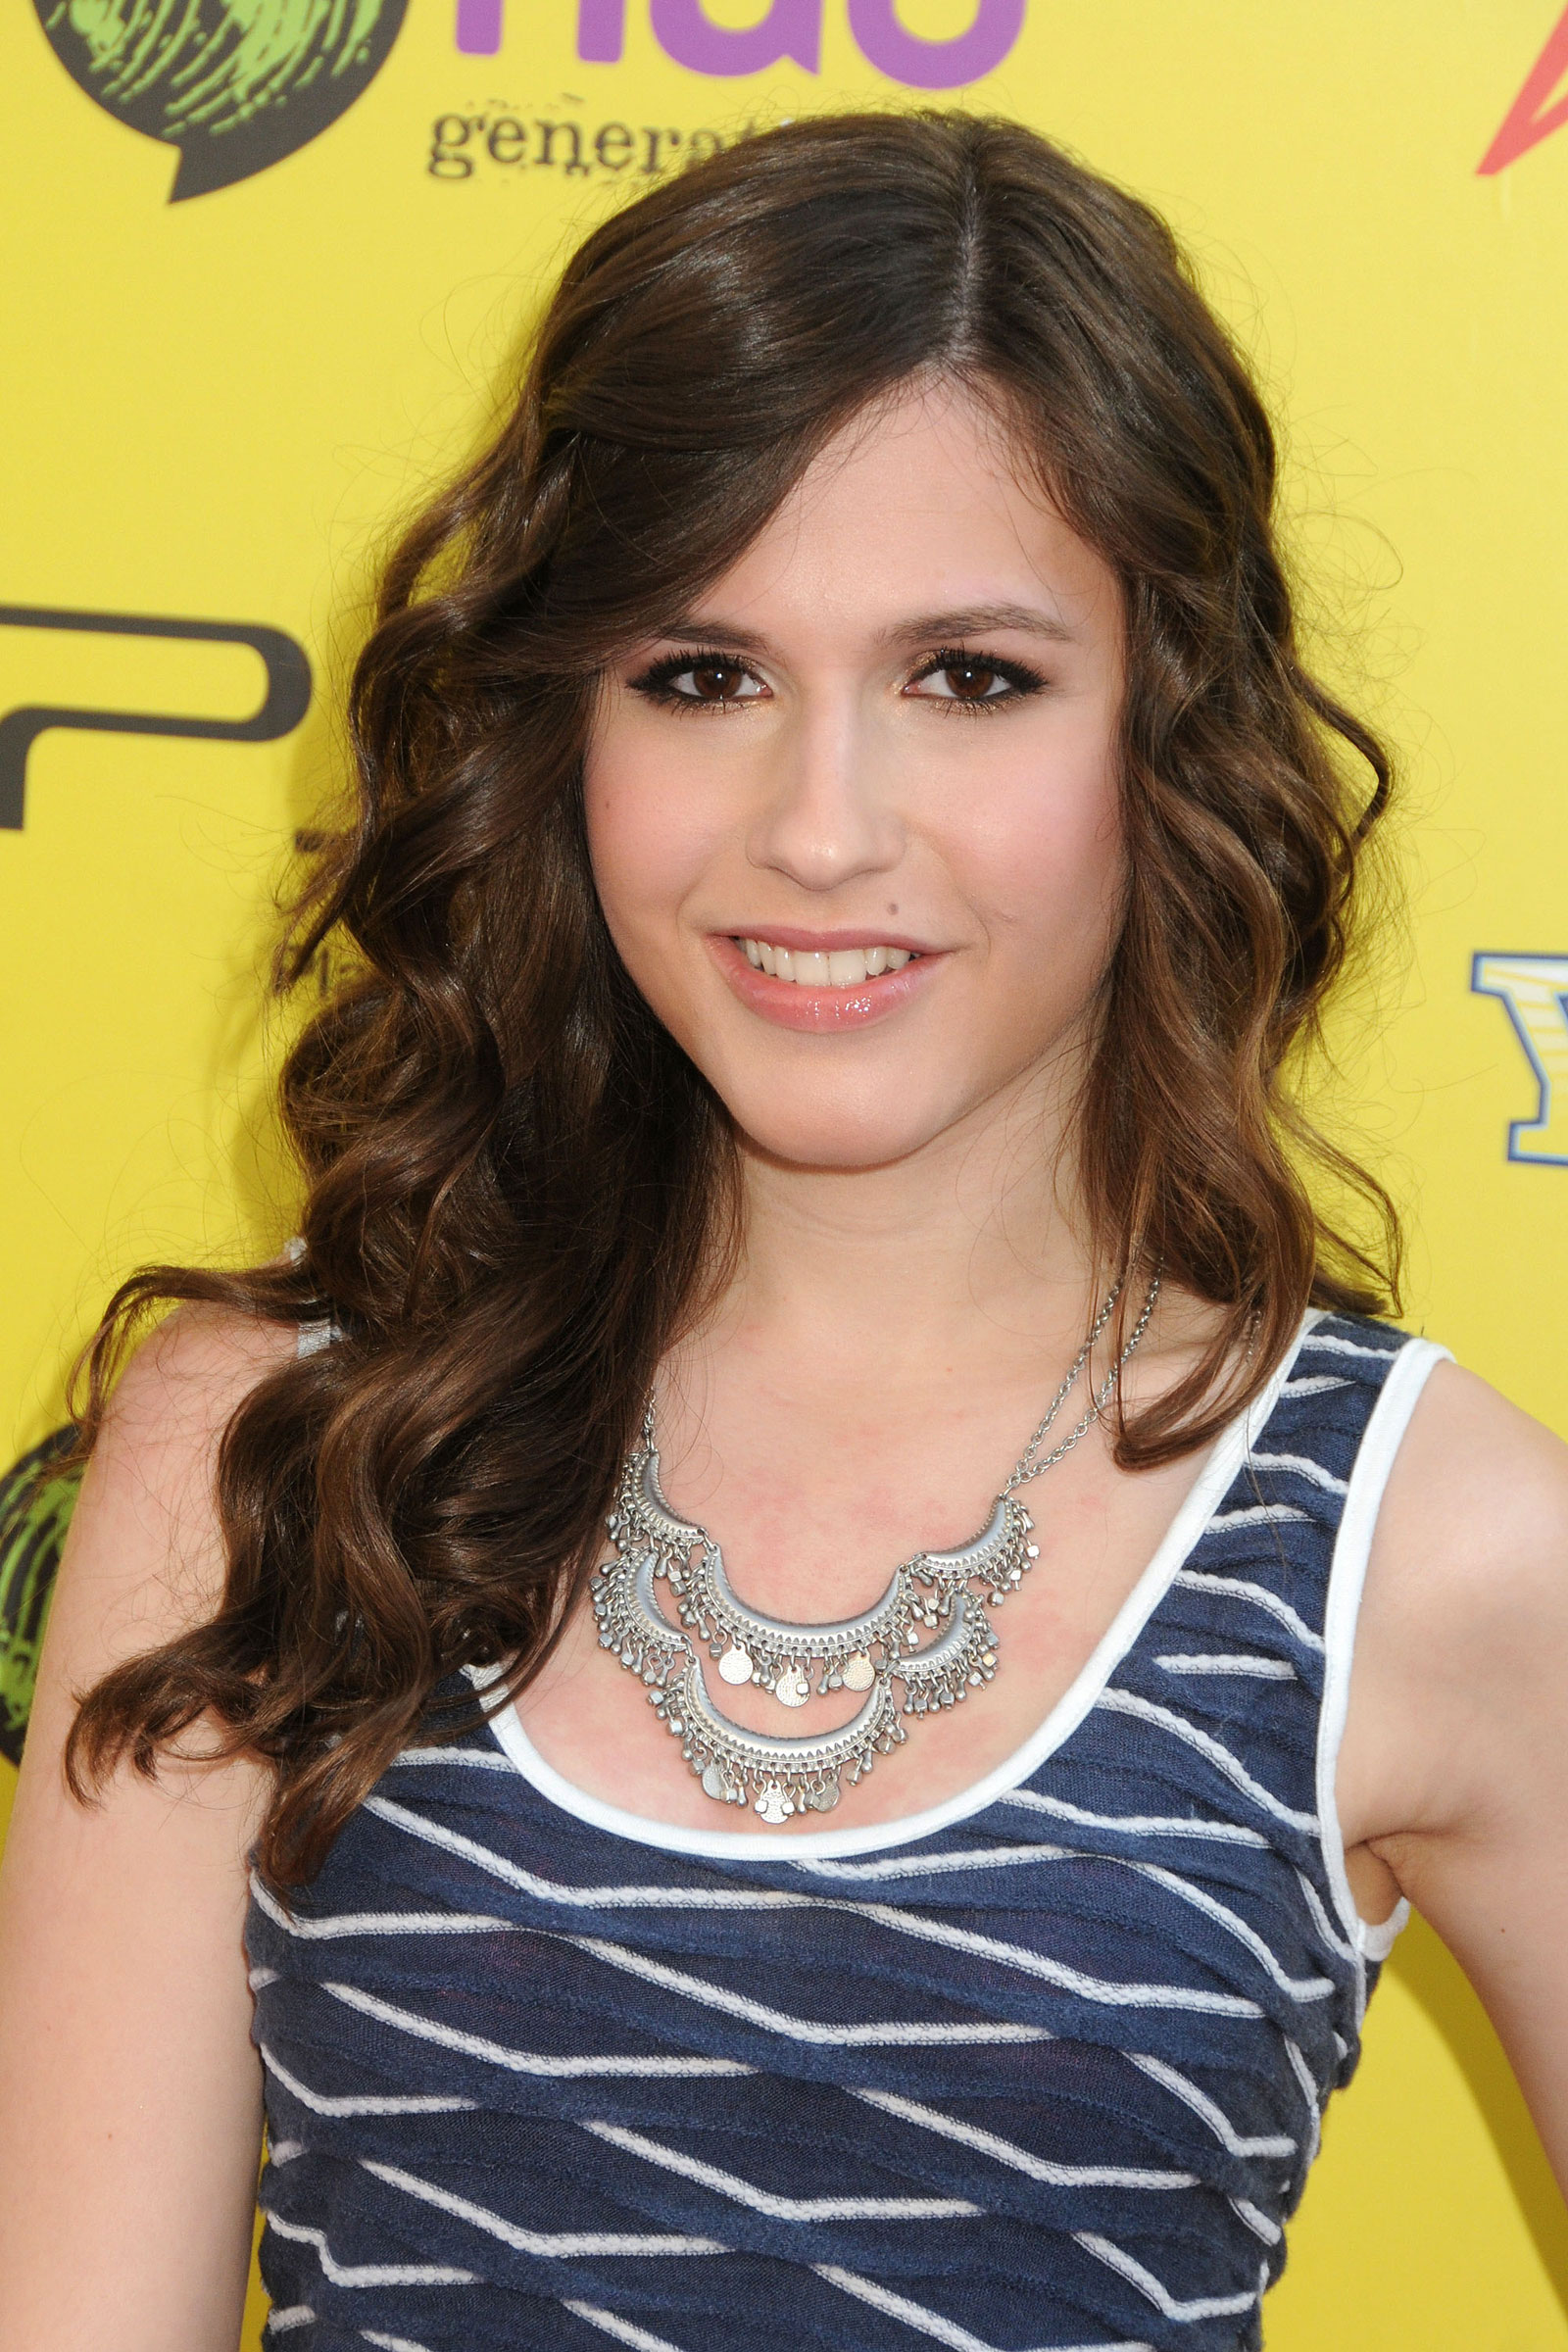 Erin Sanders: Erin Sanders At Variety's Power Of Youth Event In